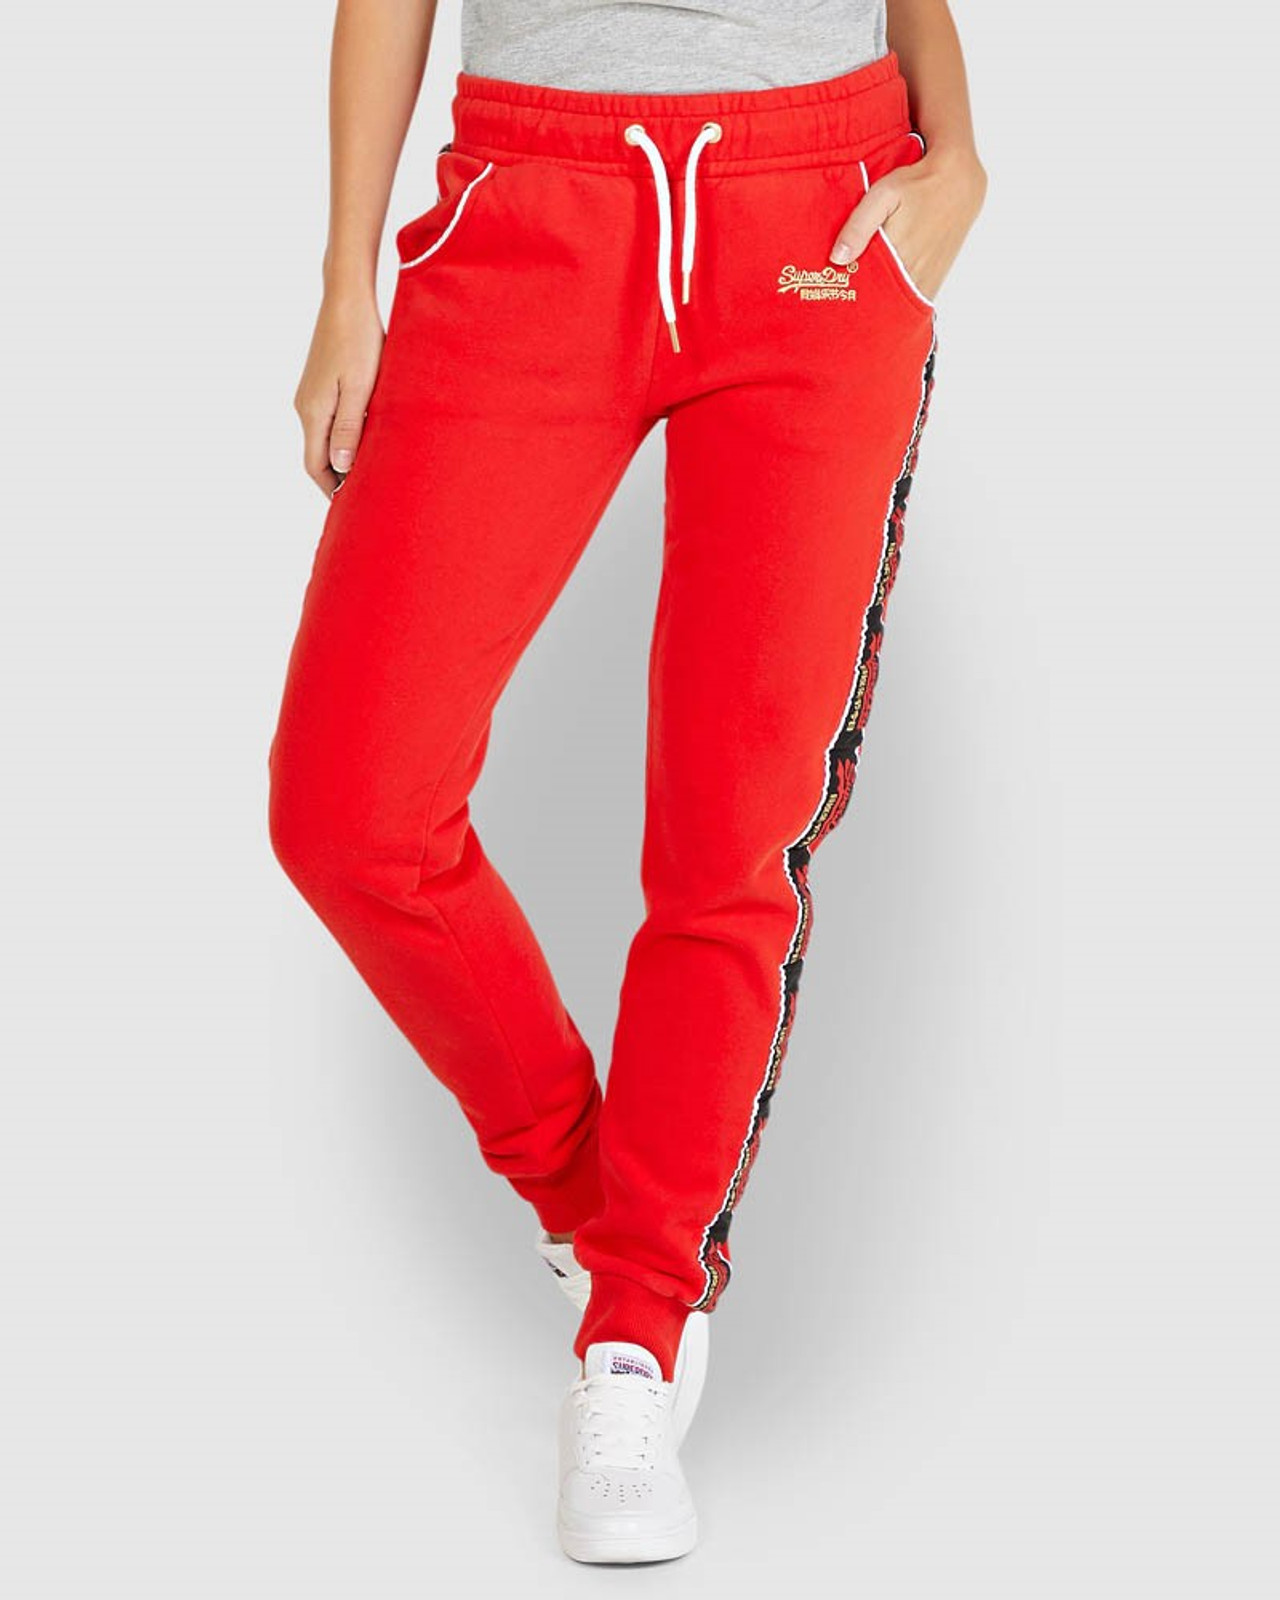 Superdry Womens CNY JOGGER Red Cuffed Joggers 0